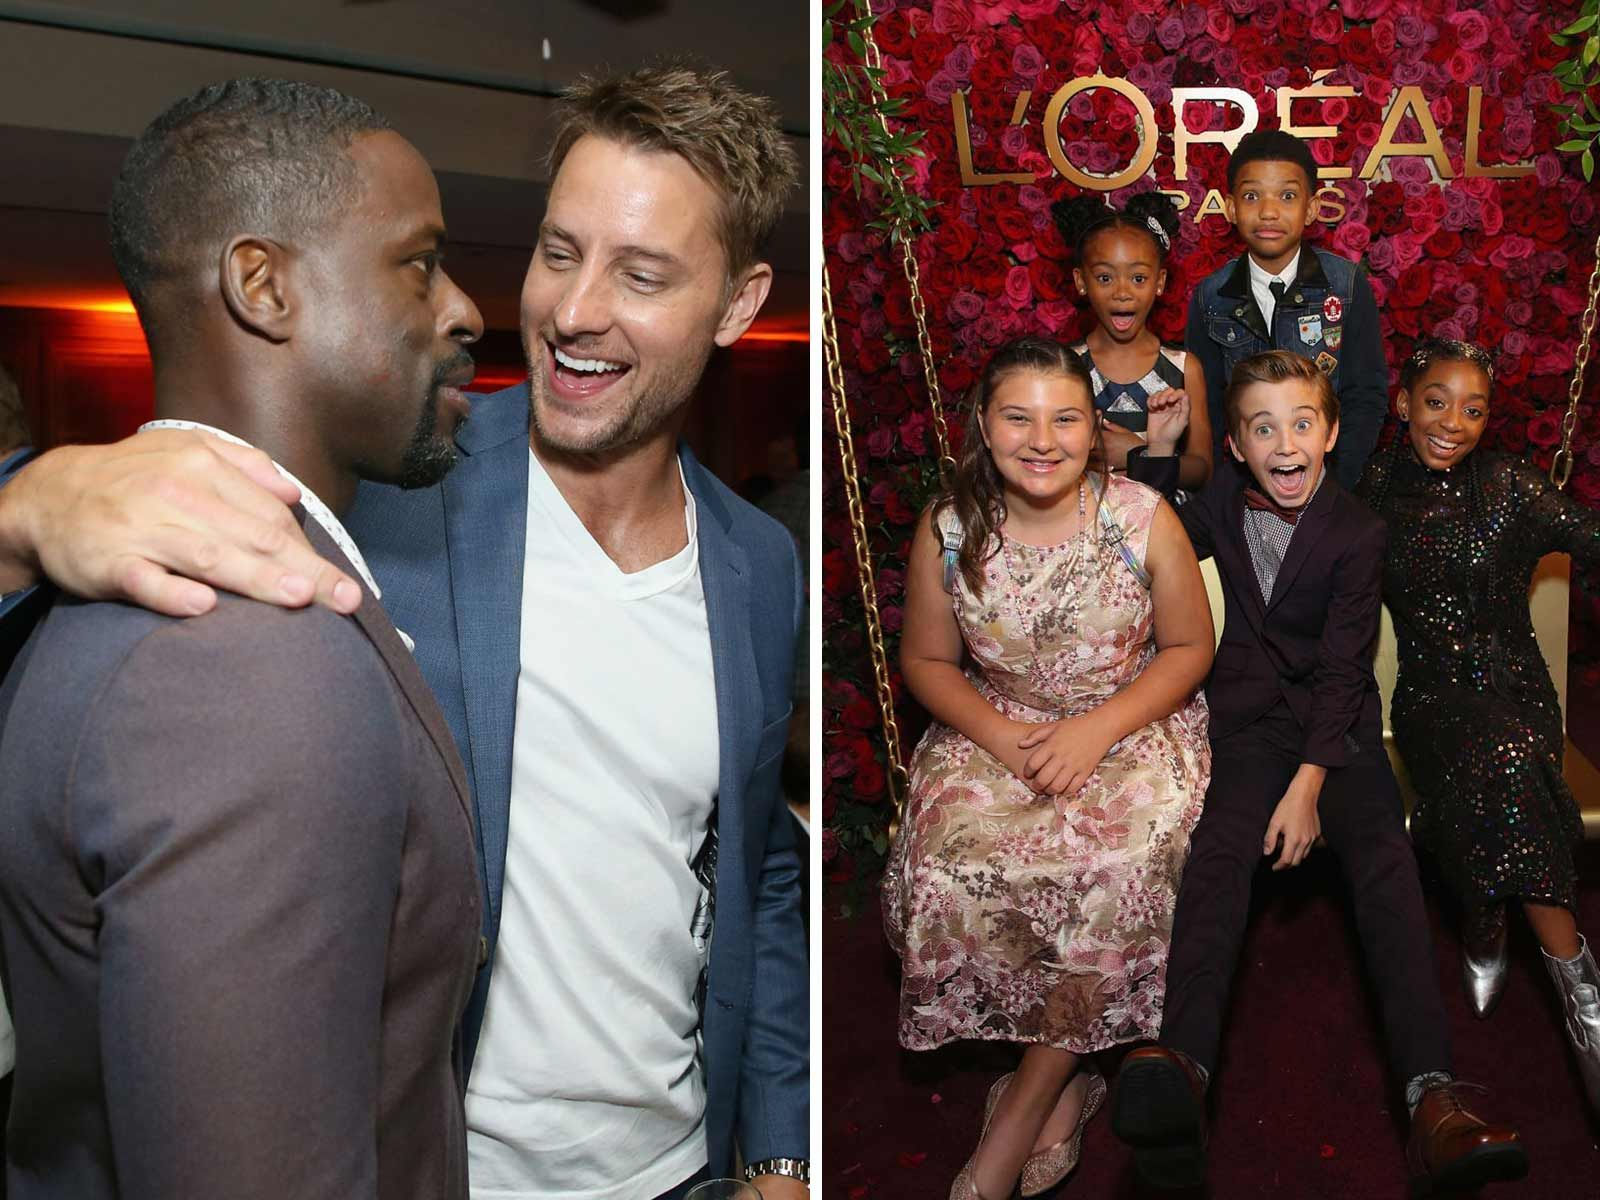 This Is Us' Cast Wins Cutest Ensemble During Pre-Emmy